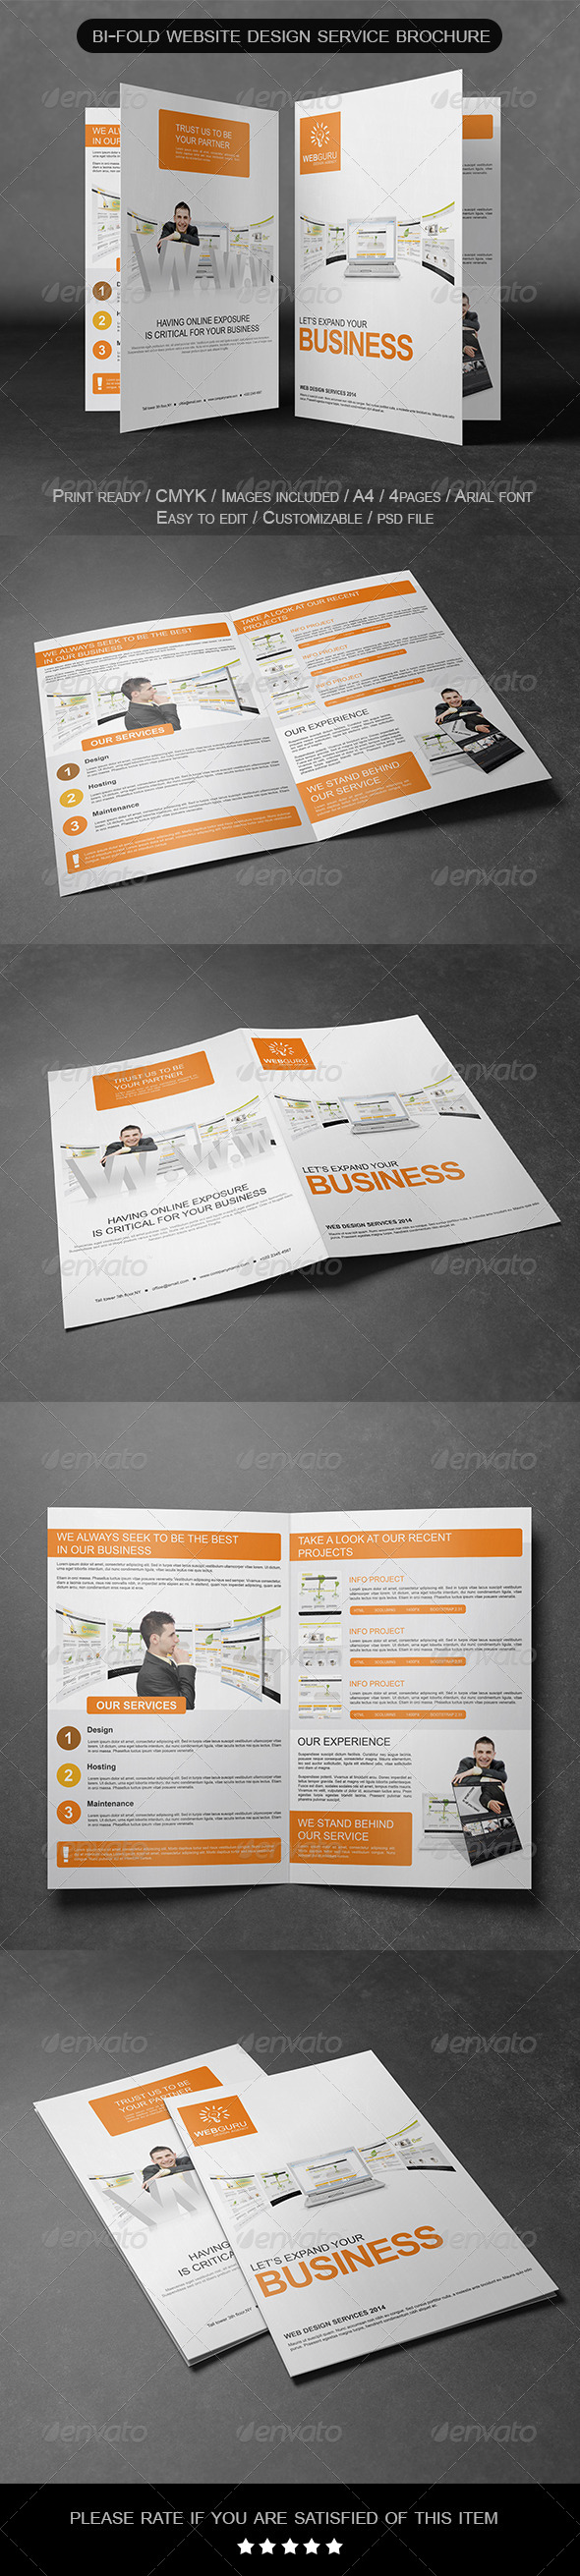 GraphicRiver Bi-Fold Website Design Service Brochure 6899733